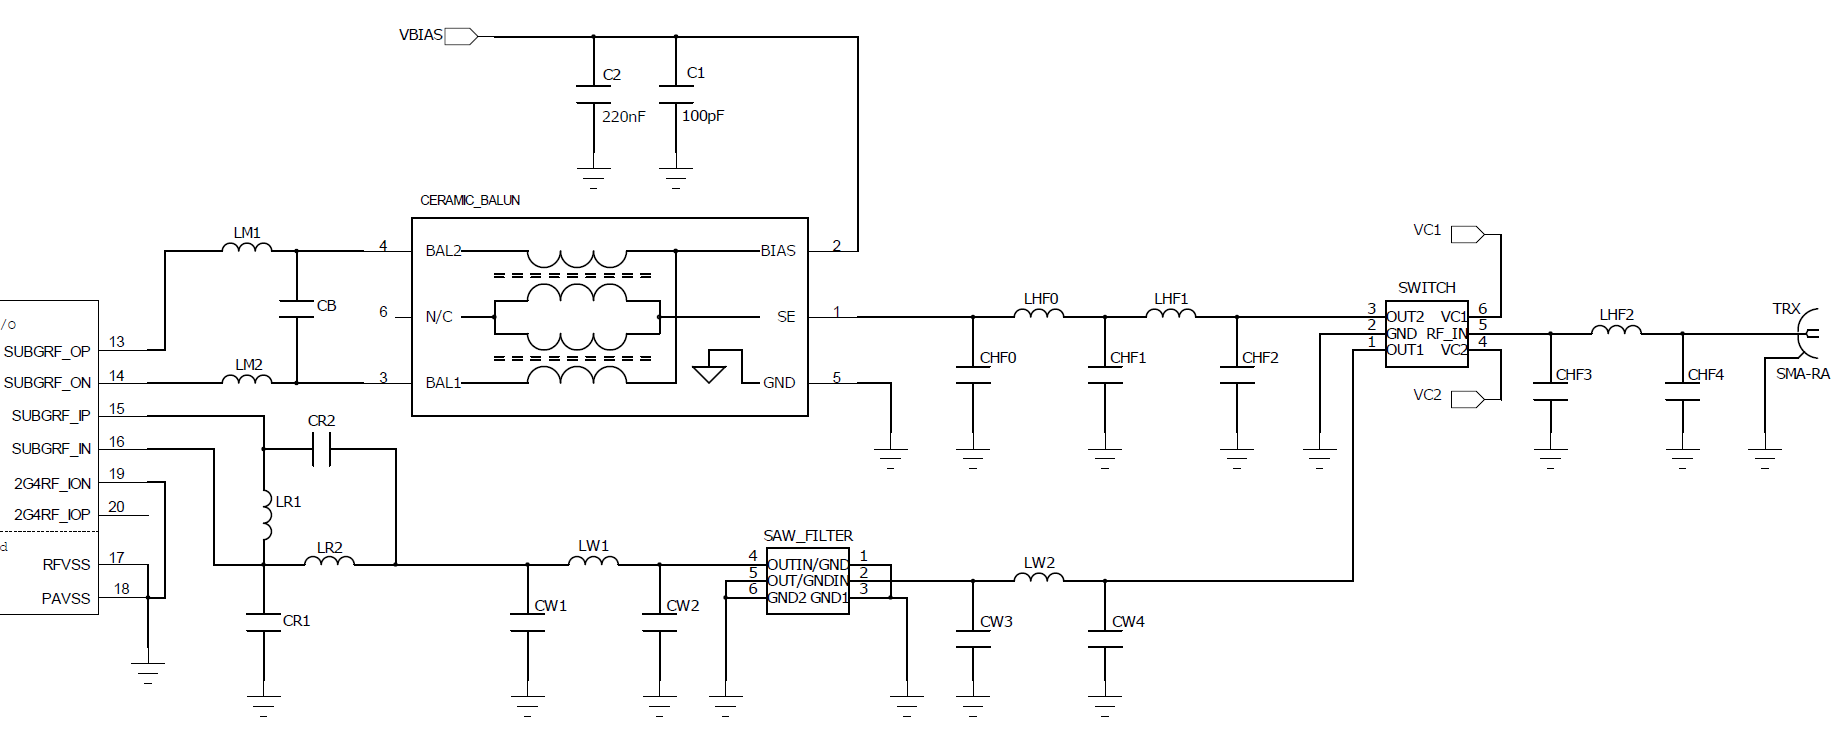 Knowledge Base Let S Look At The Schematic Rf Input Directly Connected Over Tx Path Match Is Kept From Reference Matches Available Recommended Component Values Are Shown In An923 Or Refer To Existing Designs